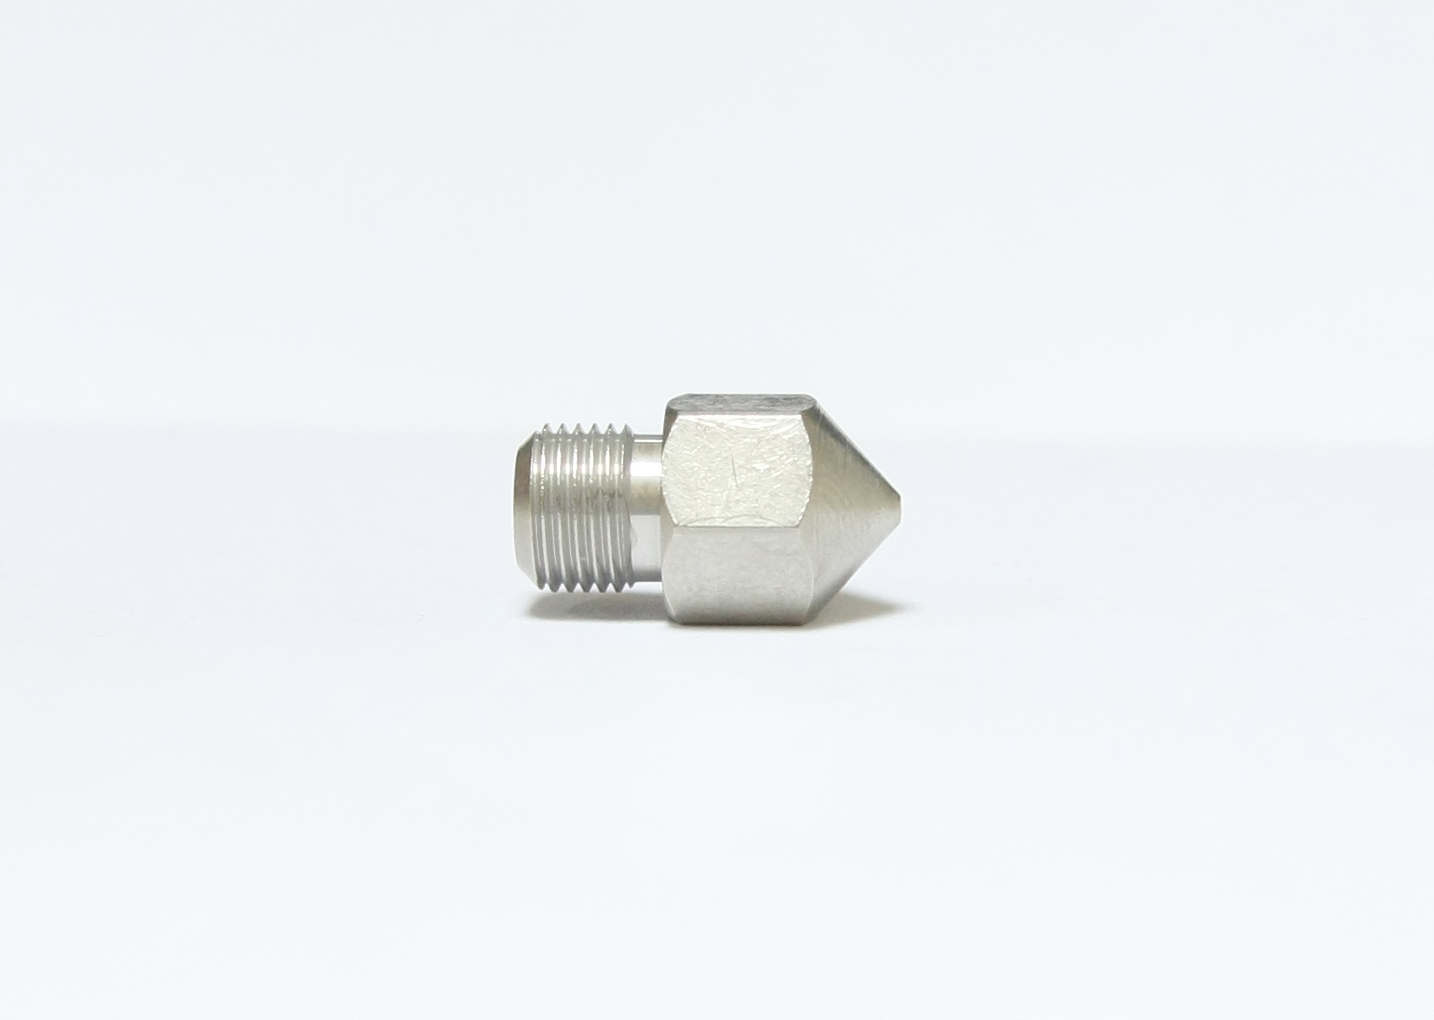 Duplicator 5 Series Nozzle